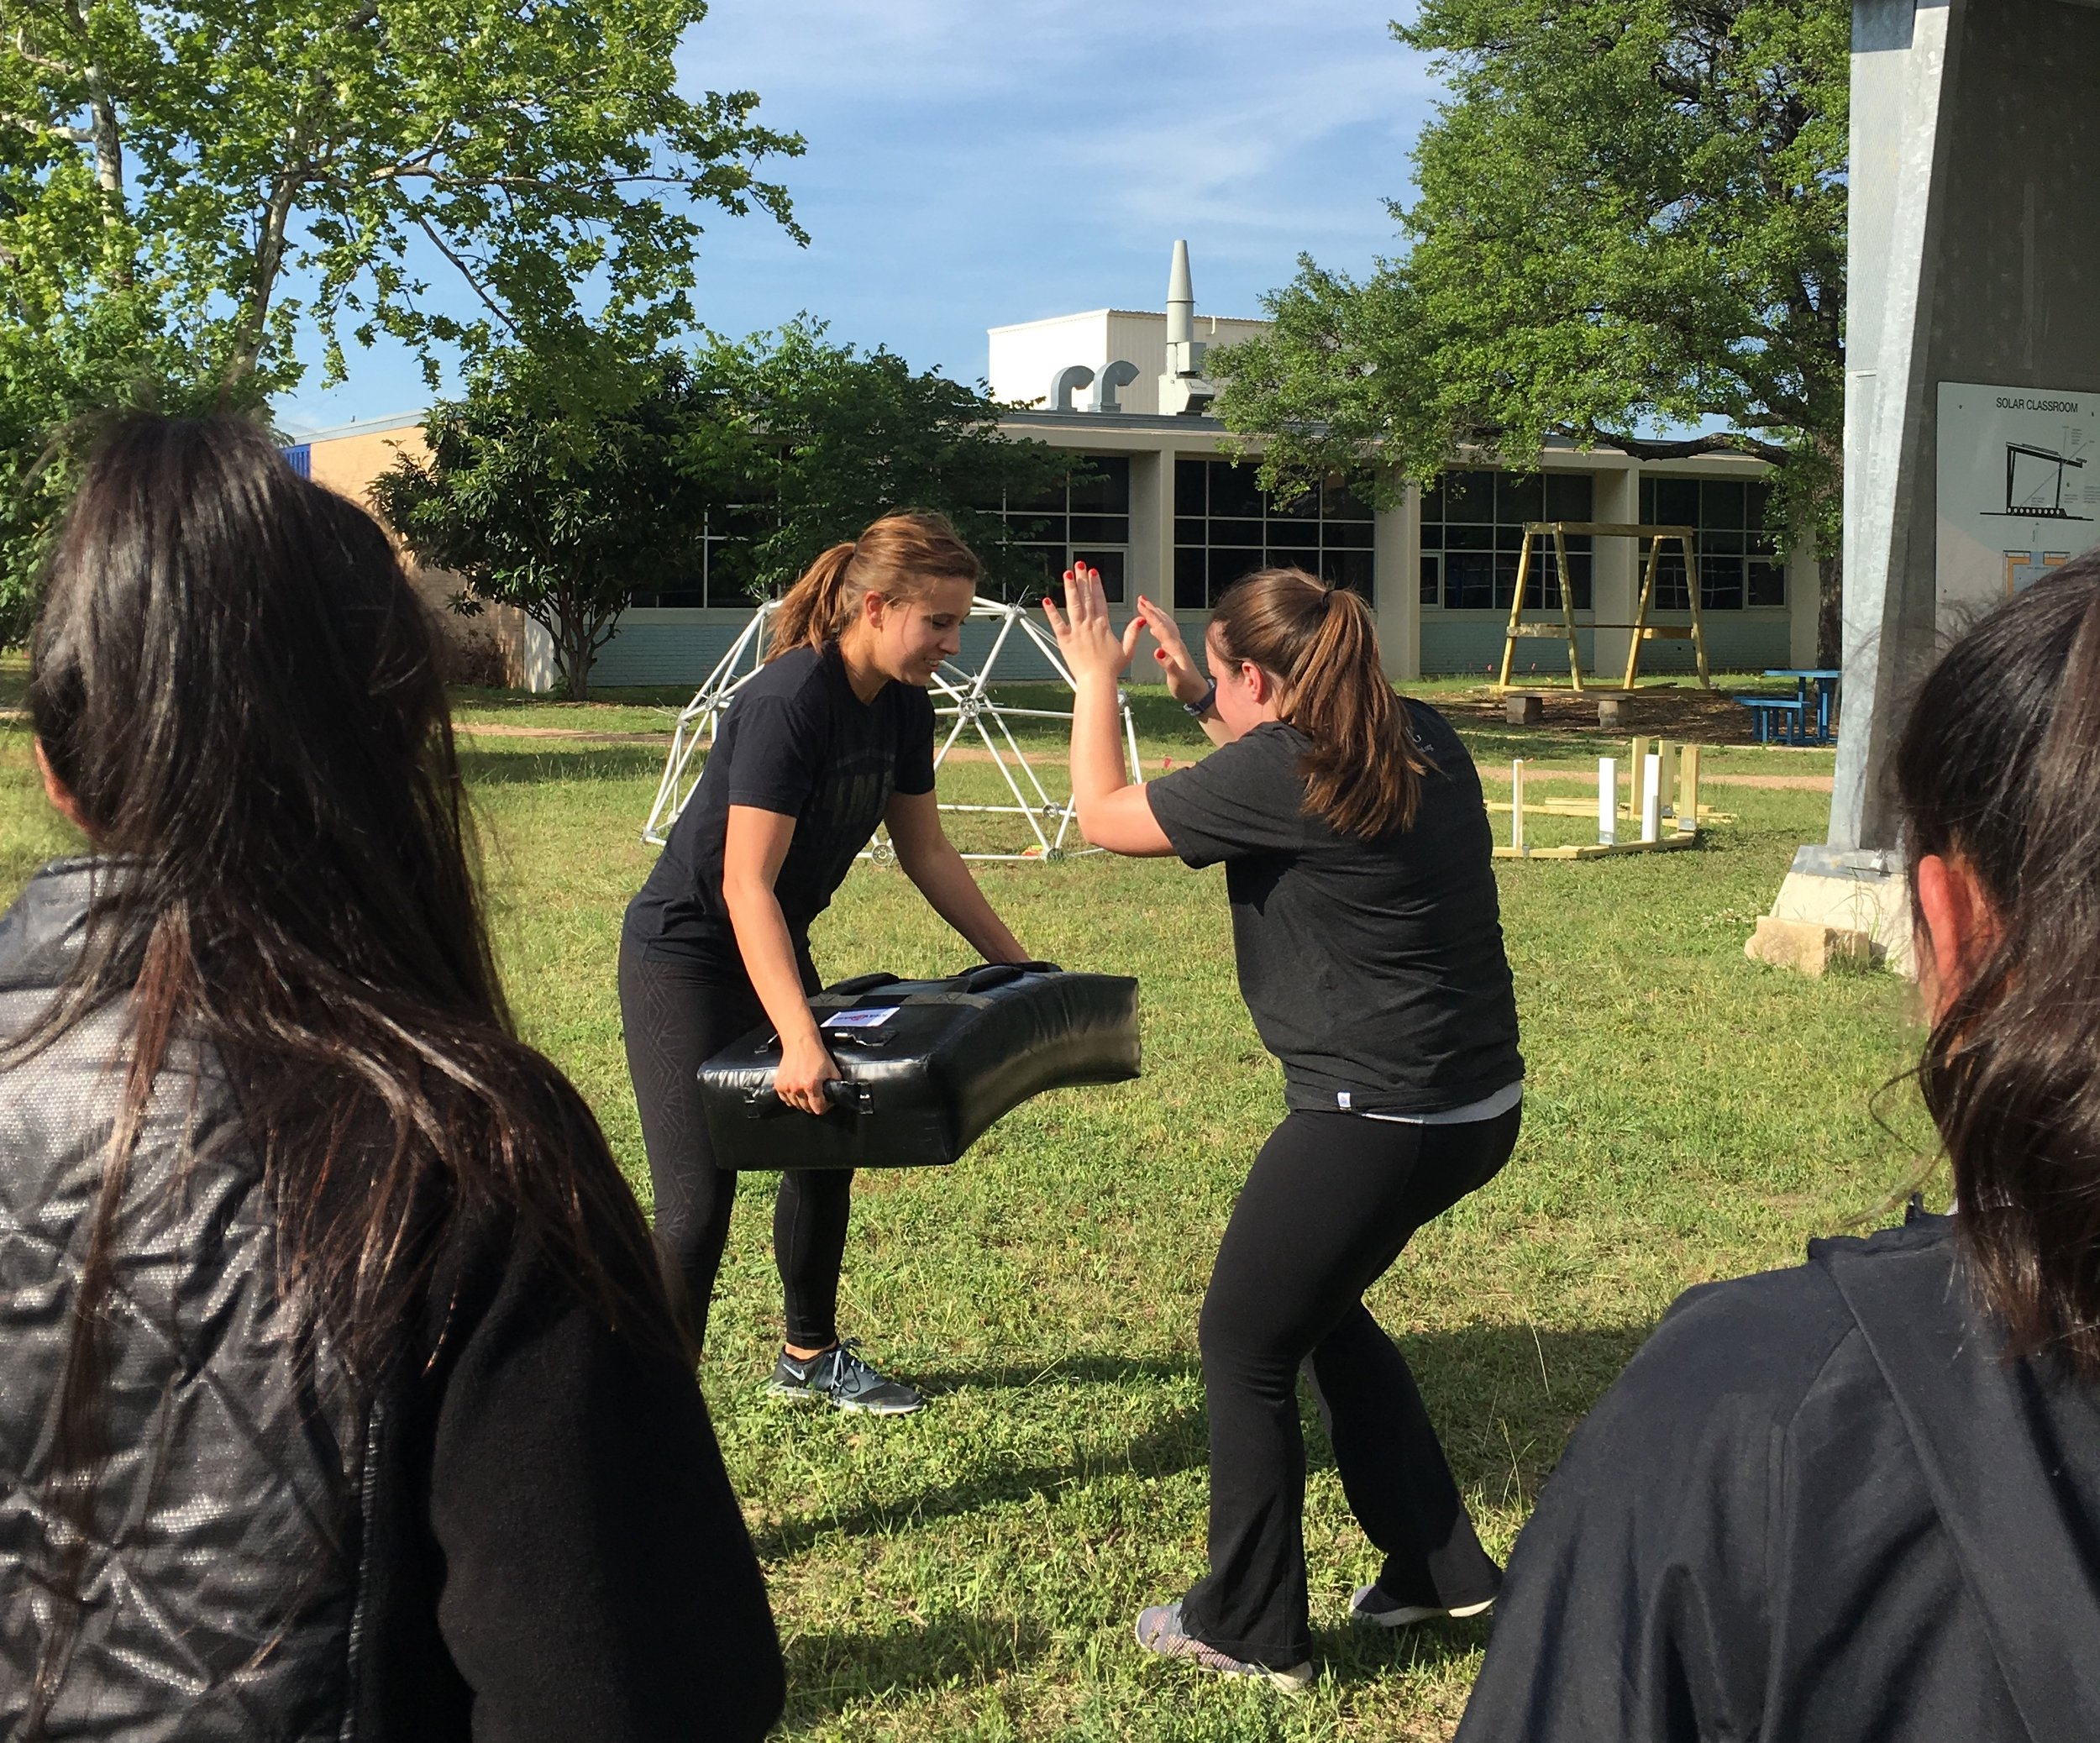 Christina and Millicent demonstrating defensive moves to some of our GwG participants.